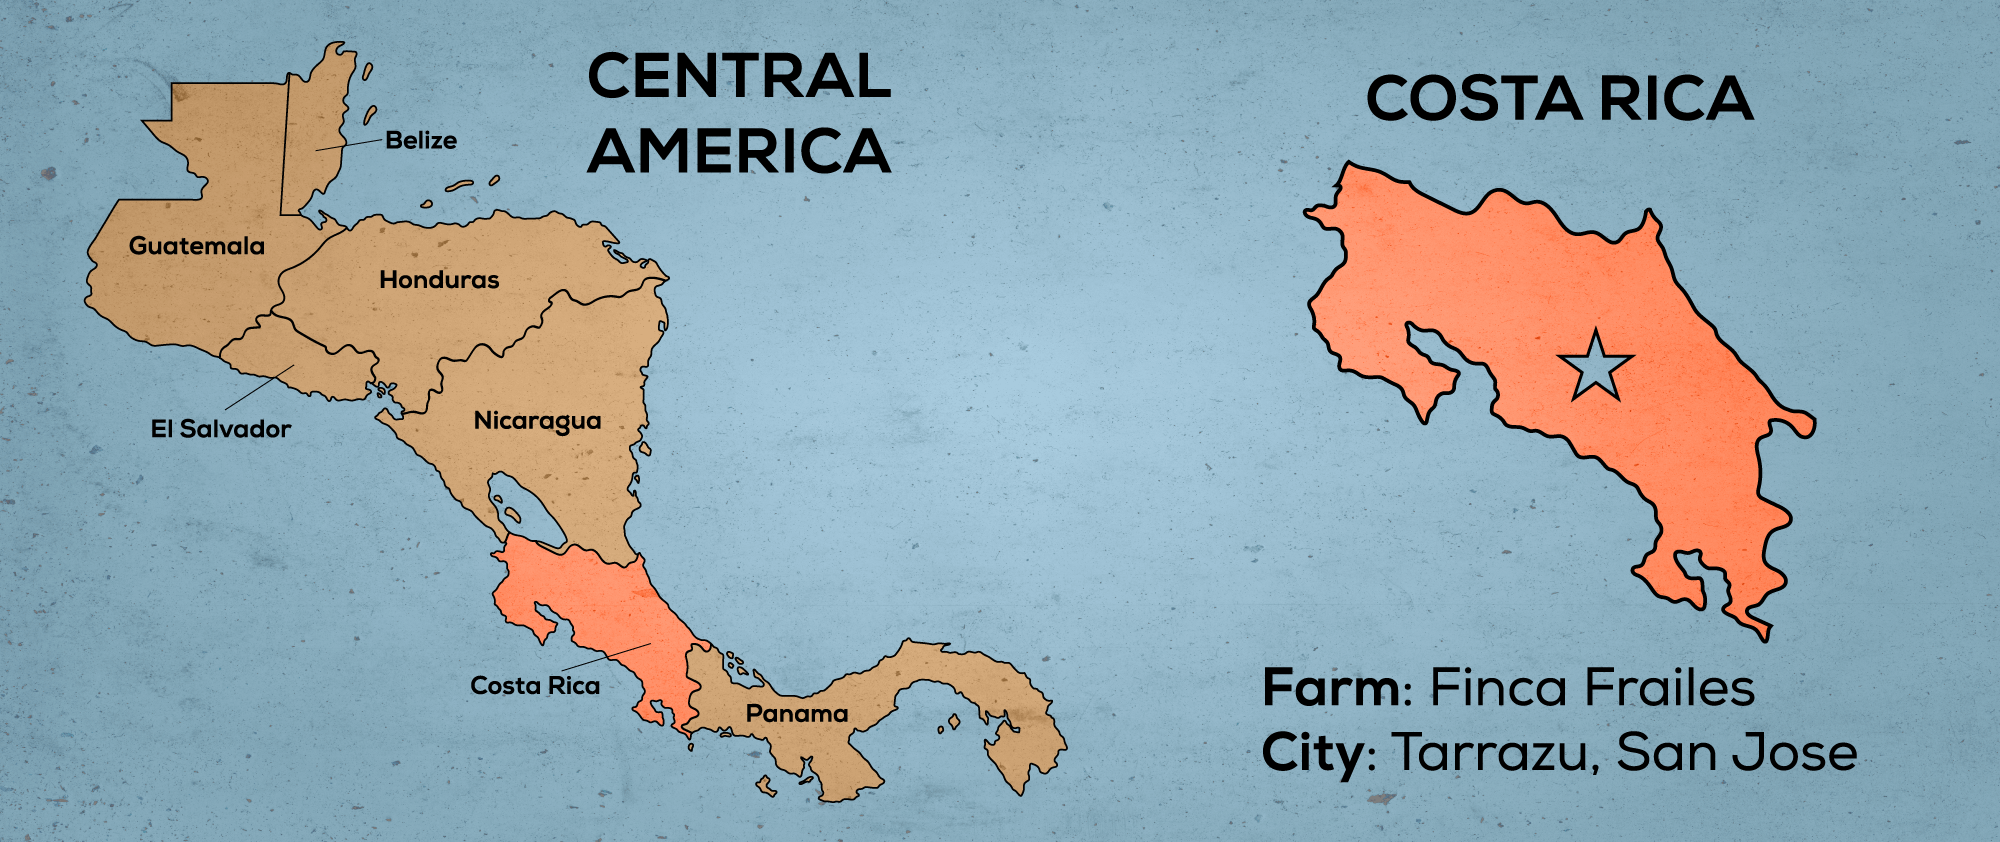 Map of Central America & Costa Rica